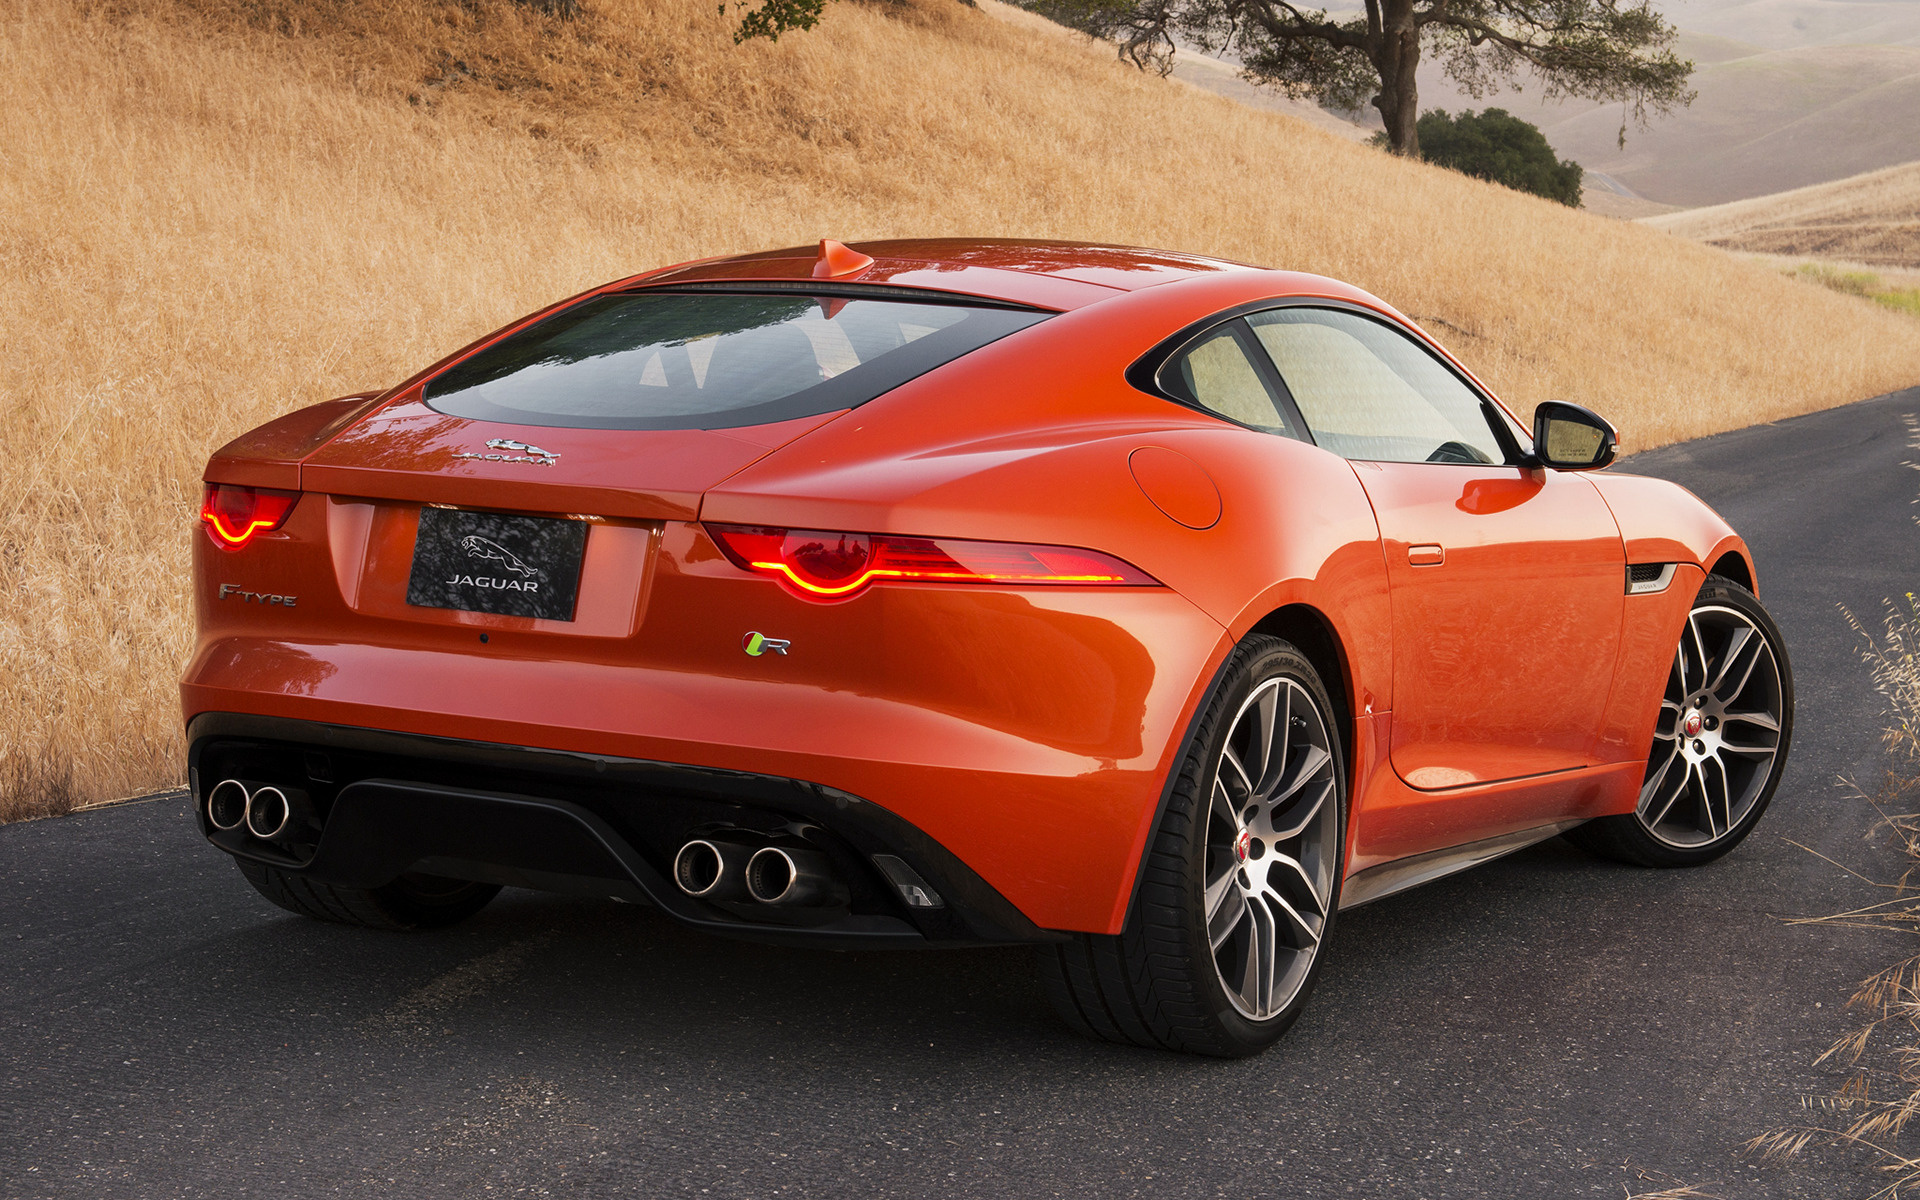 Jaguar F Type S >> Jaguar F-Type R Coupe (2015) US Wallpapers and HD Images - Car Pixel